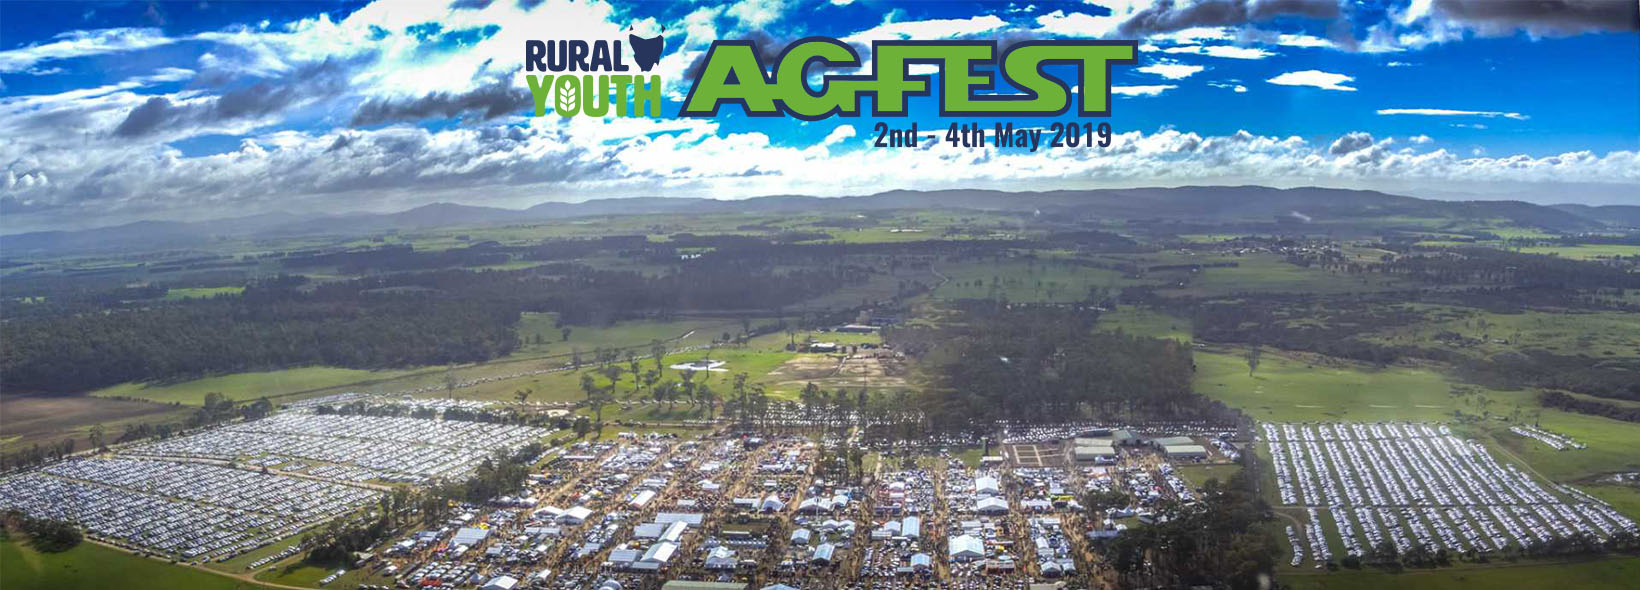 Tas North Branch at Agfest 2019